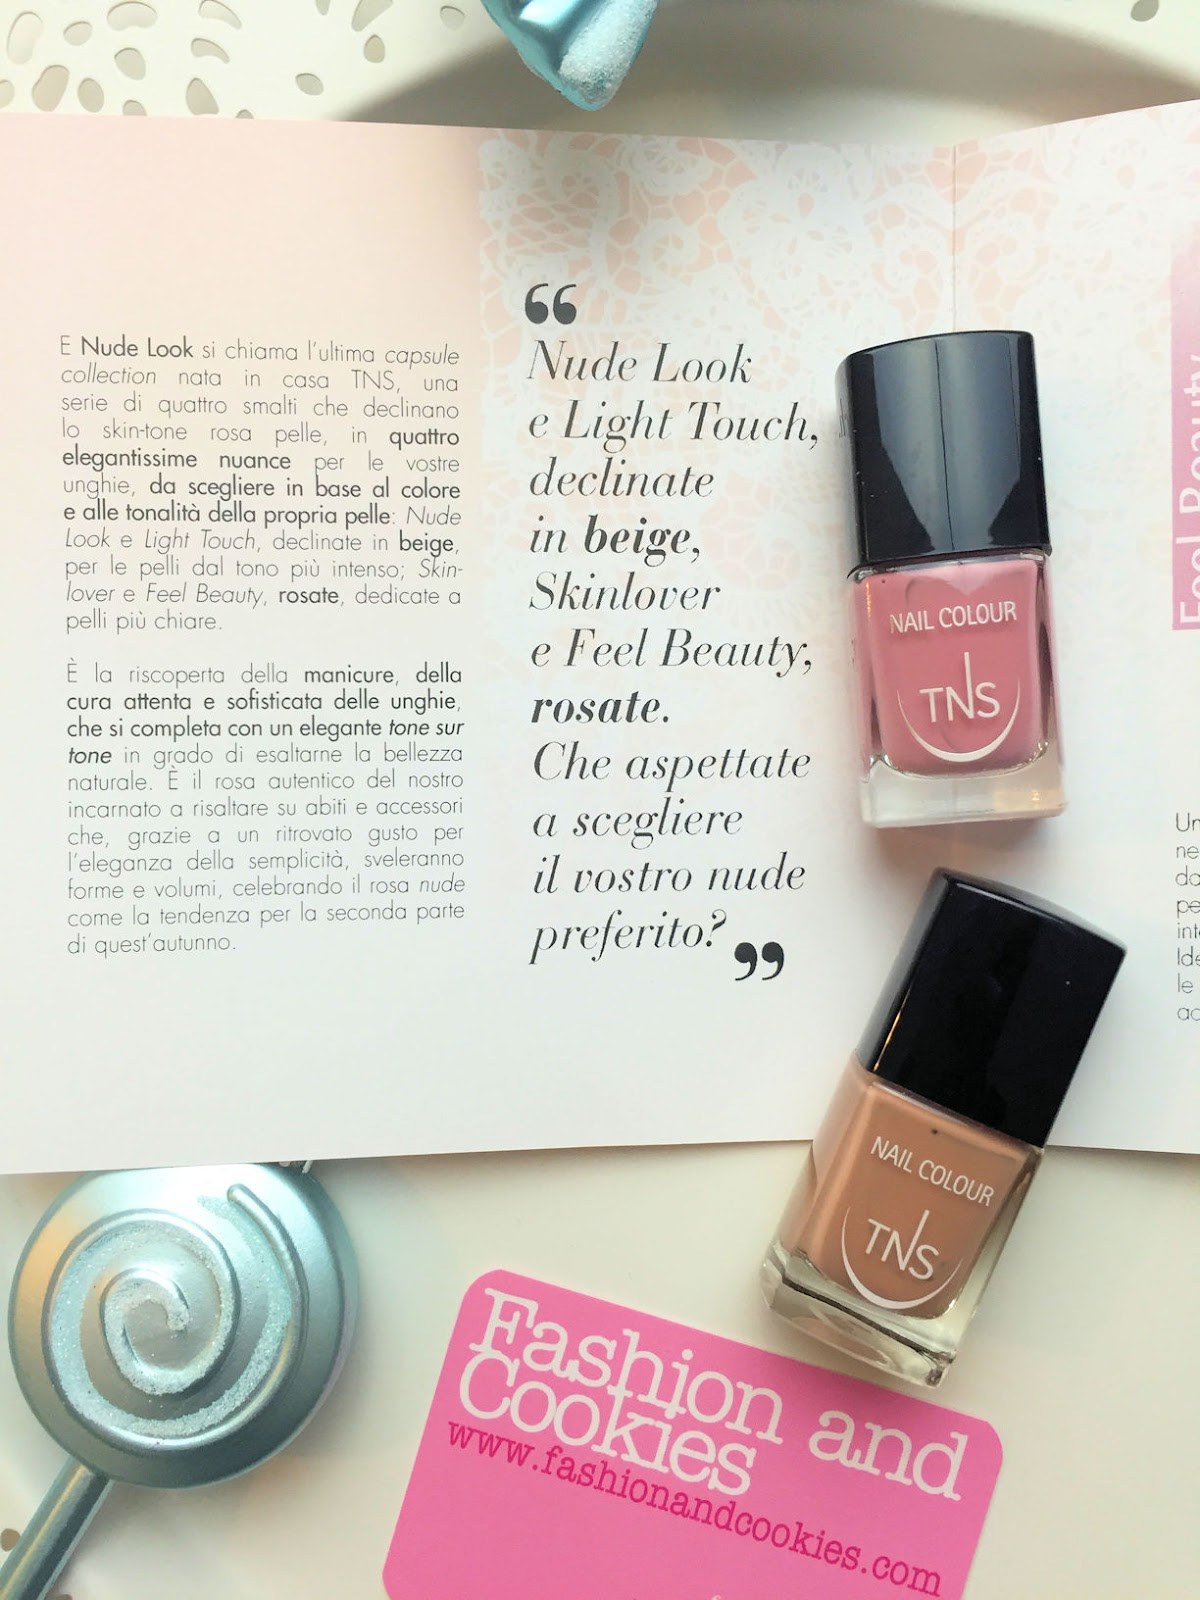 Nude Look and skinlover nail polish collection by TNS Cosmetics on Fashion and Cookies beauty blog, beauty blogger review